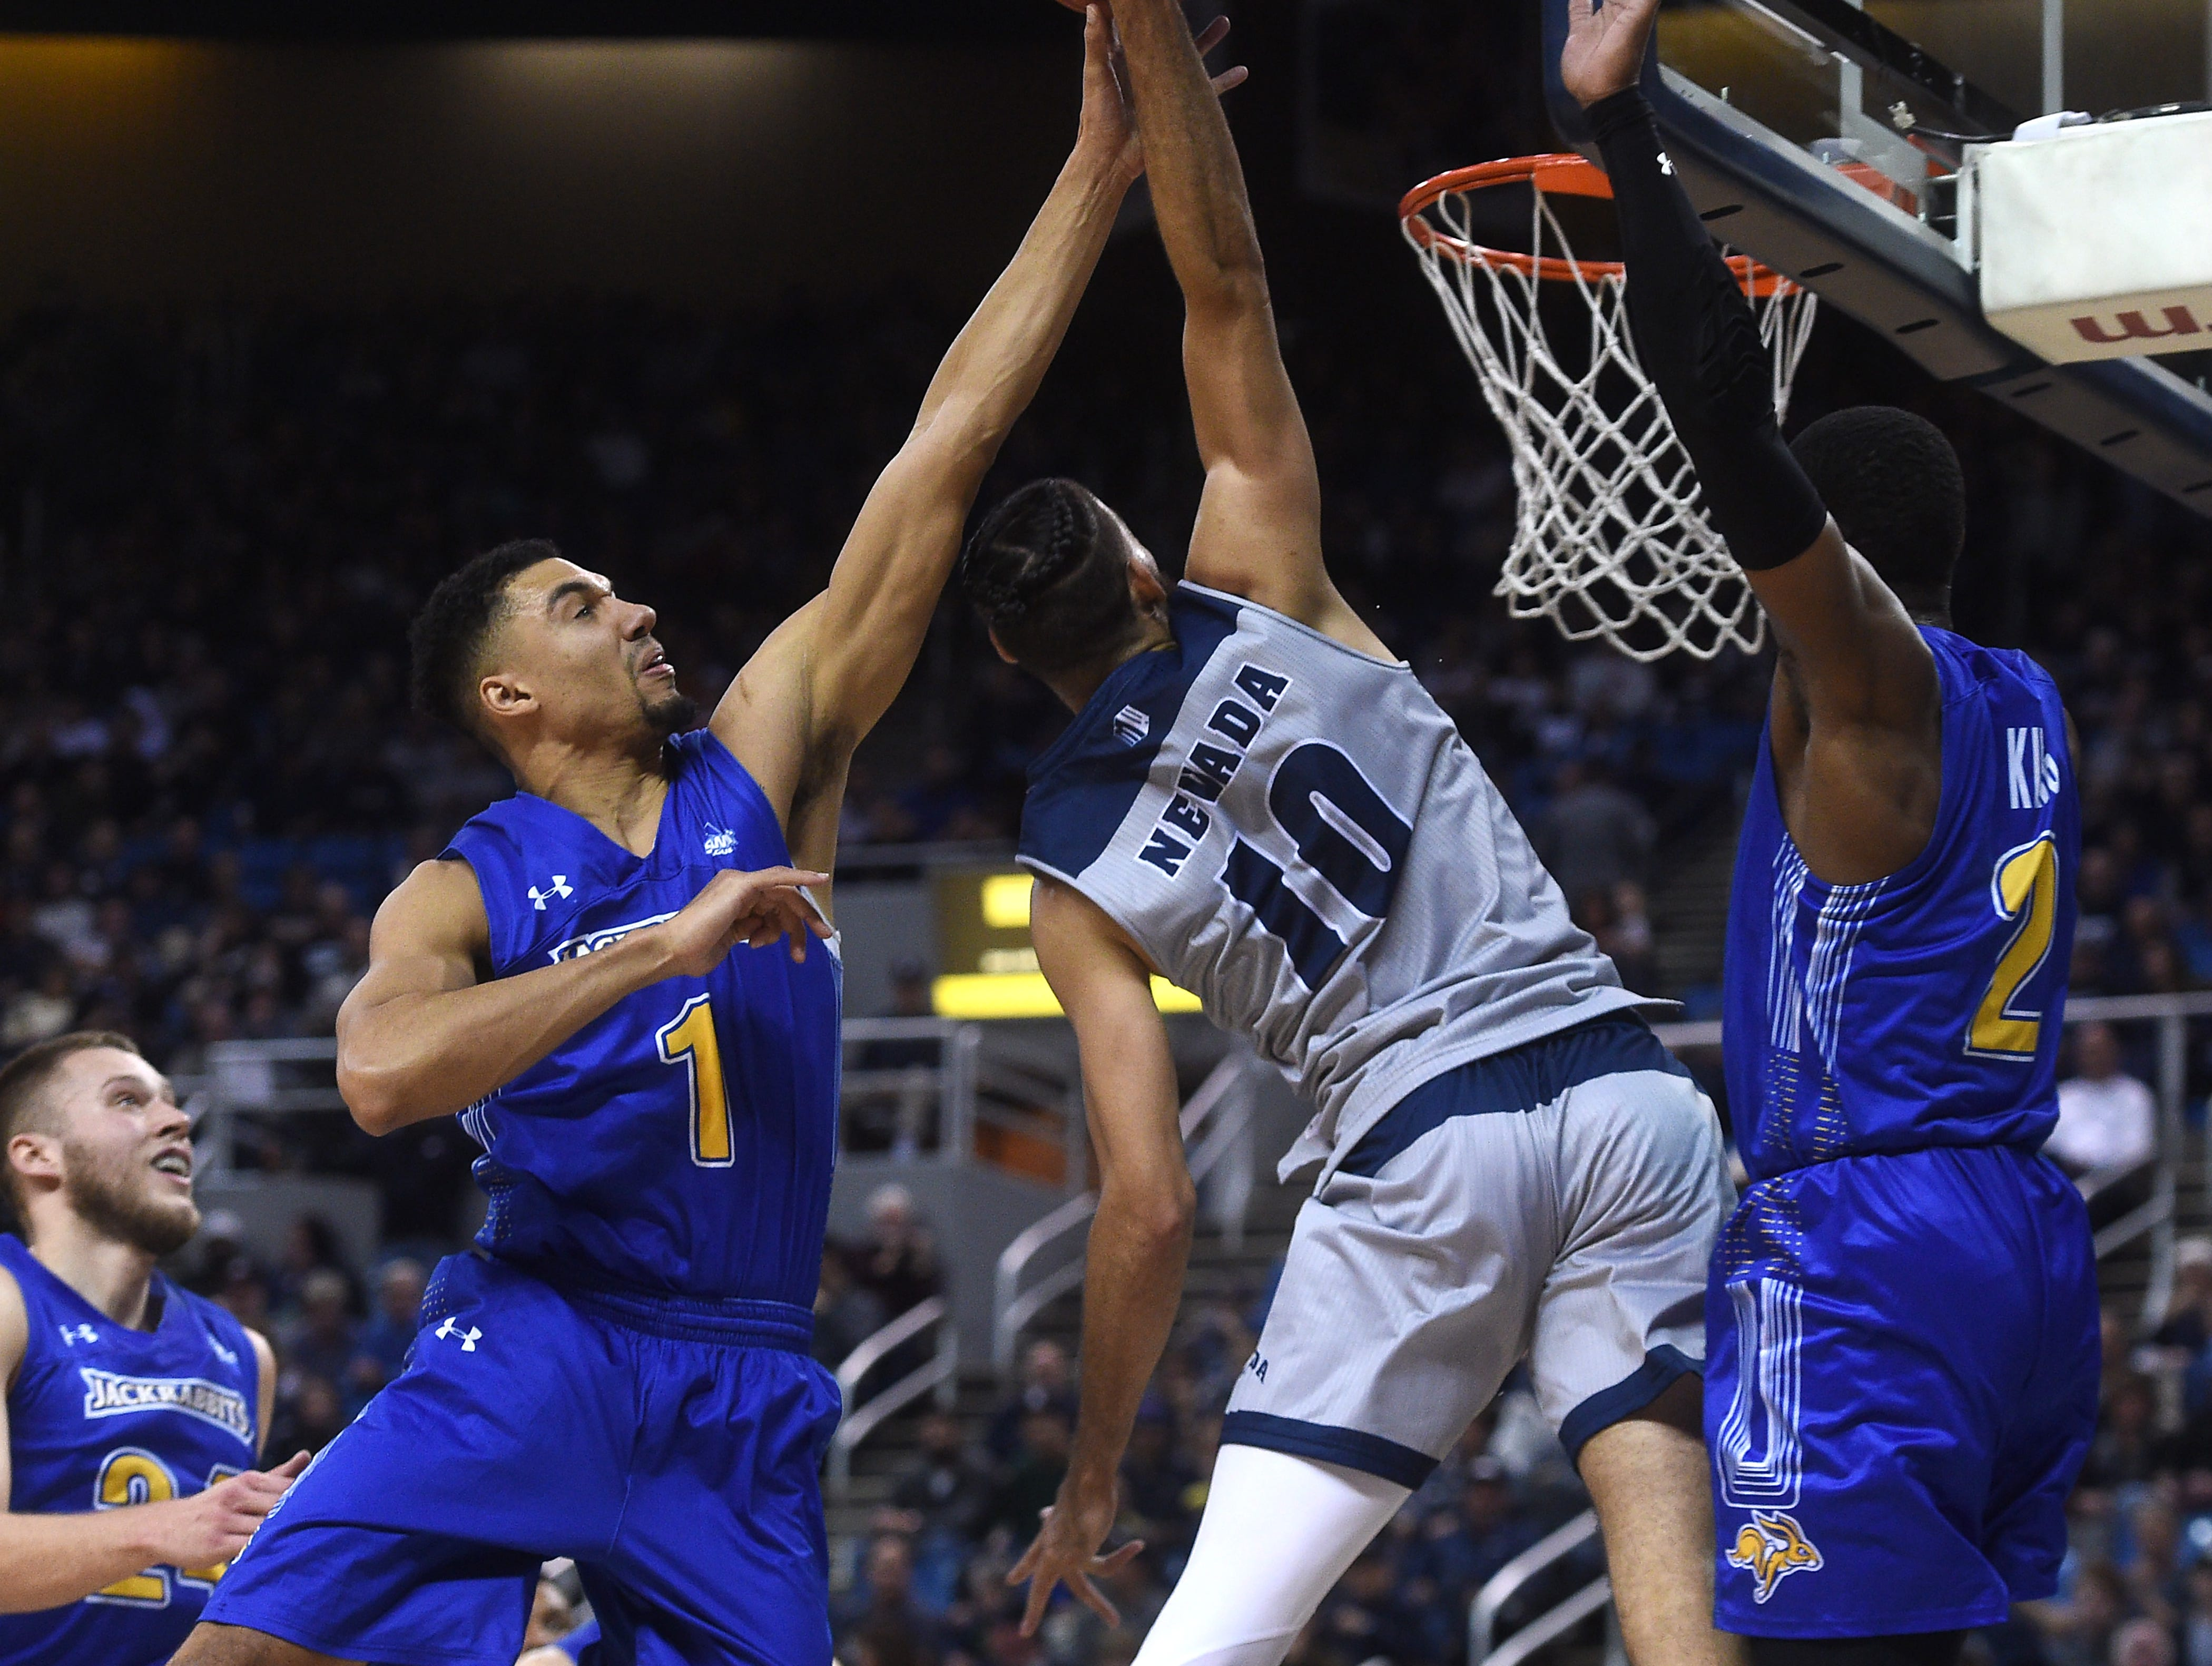 Nevada's Caleb Martin (10) goes in for a dunk while taking on South Dakota State during their basketball game at Lawlor Events Center in Reno on Dec. 15, 2018.